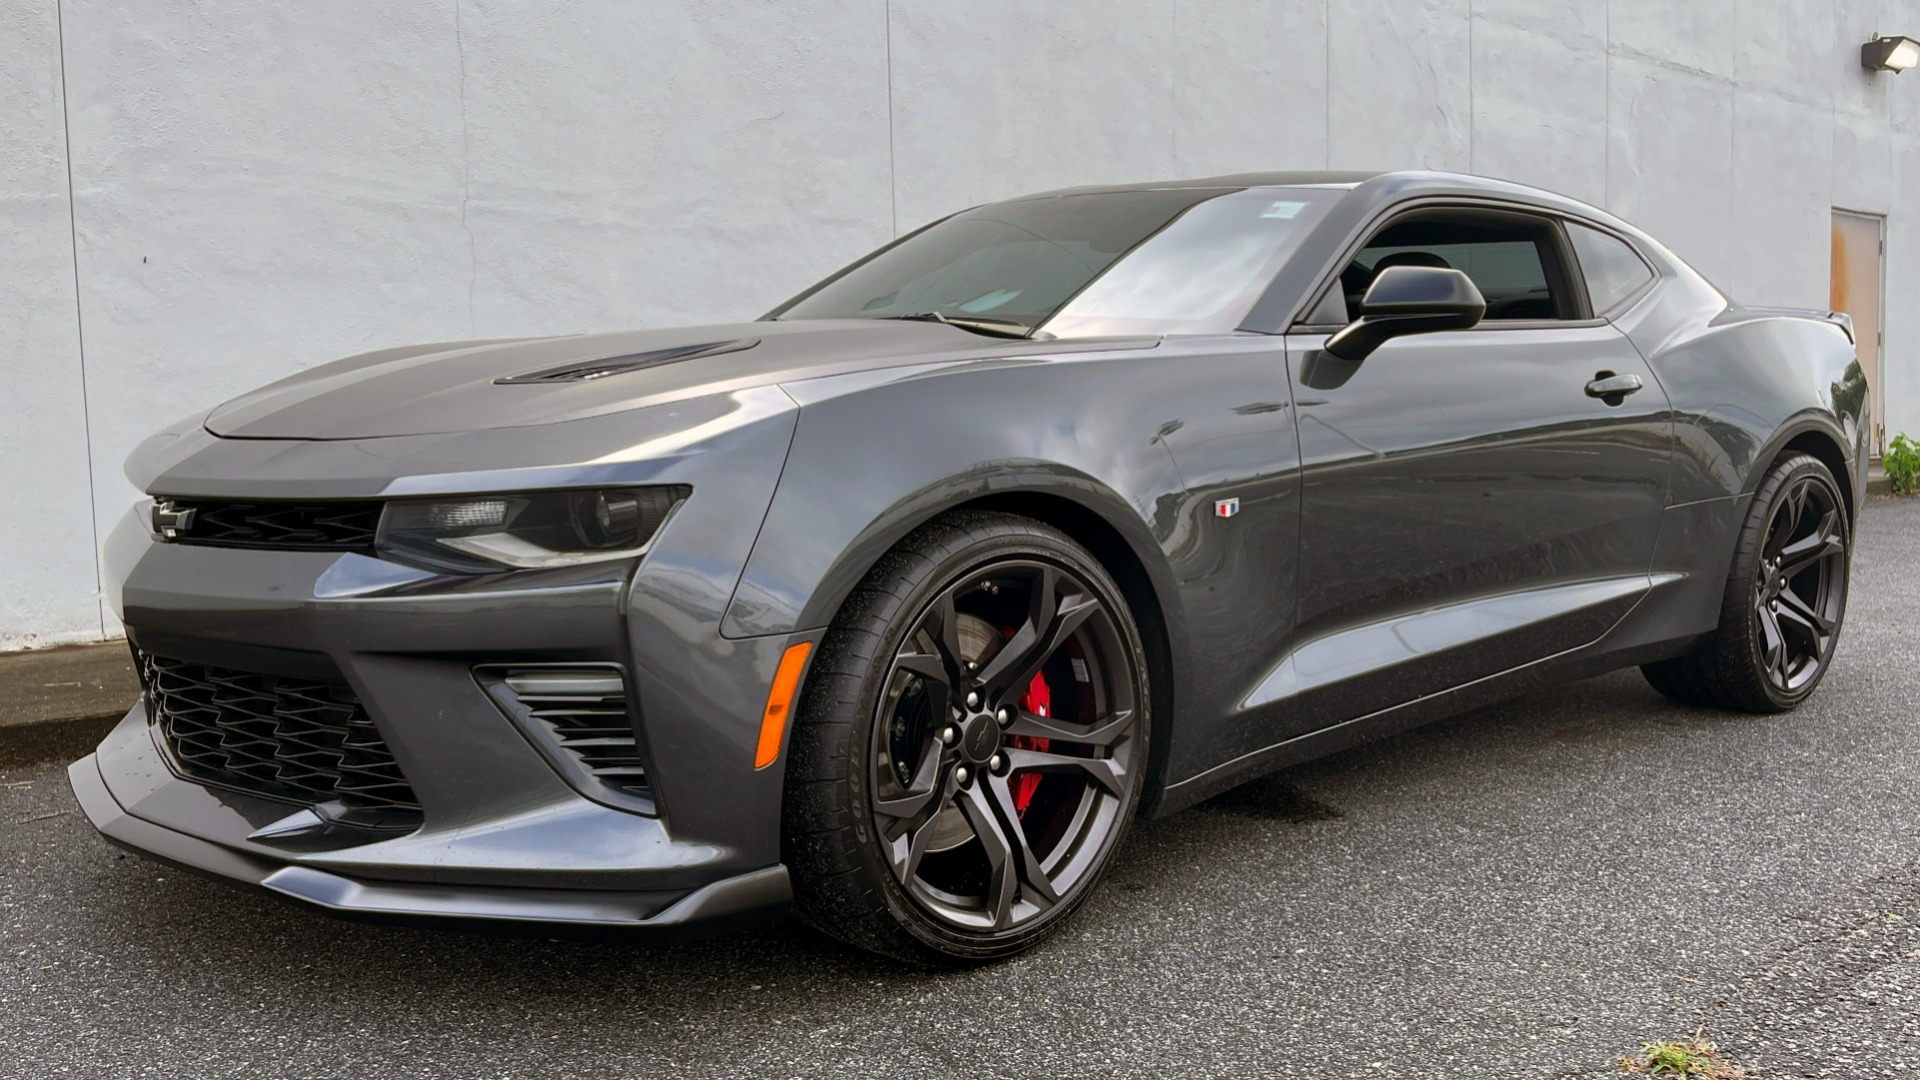 Used 2018 Chevrolet CAMARO 2SS / 6.2L V8 / MANUAL / 1LE TRACK PKG / NAV / BOSE / REARVIEW for sale $39,795 at Formula Imports in Charlotte NC 28227 2